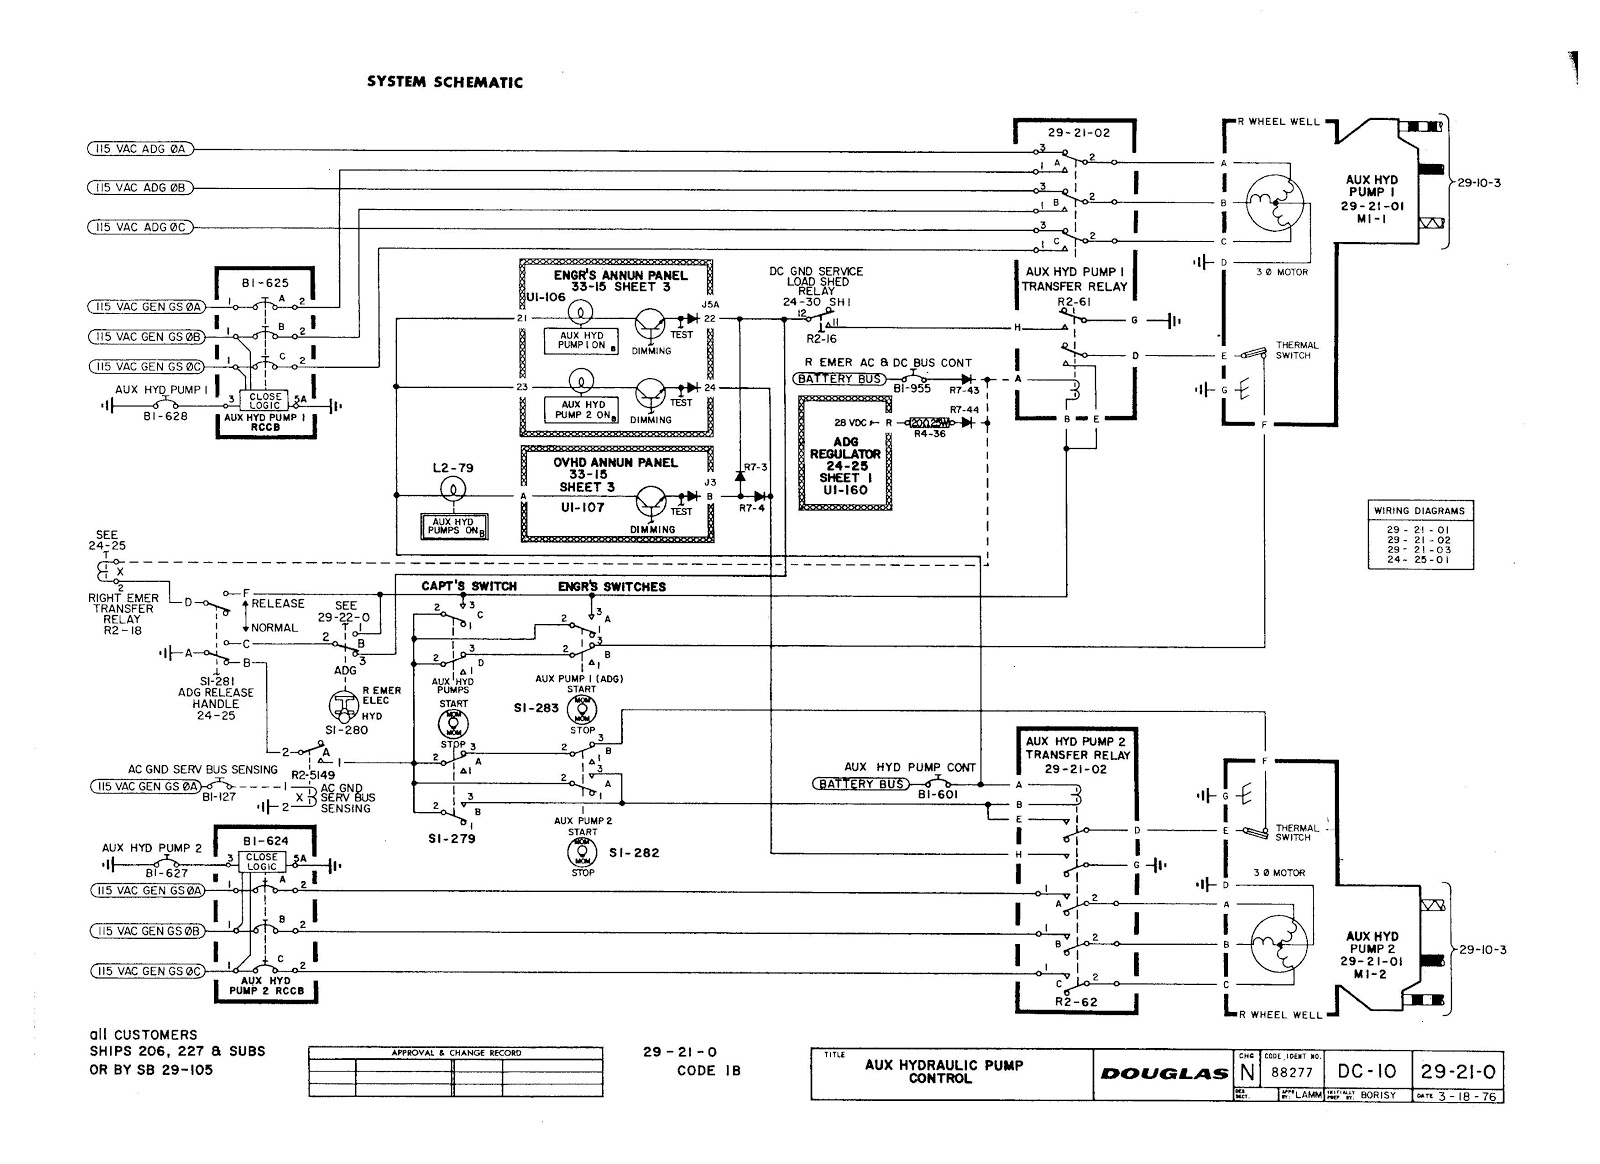 Ge Microwave Wiring Diagram 91 S10 Part 66 Virtual School Aircraft And Schematic Diagrams Dc10 Hydraulic System